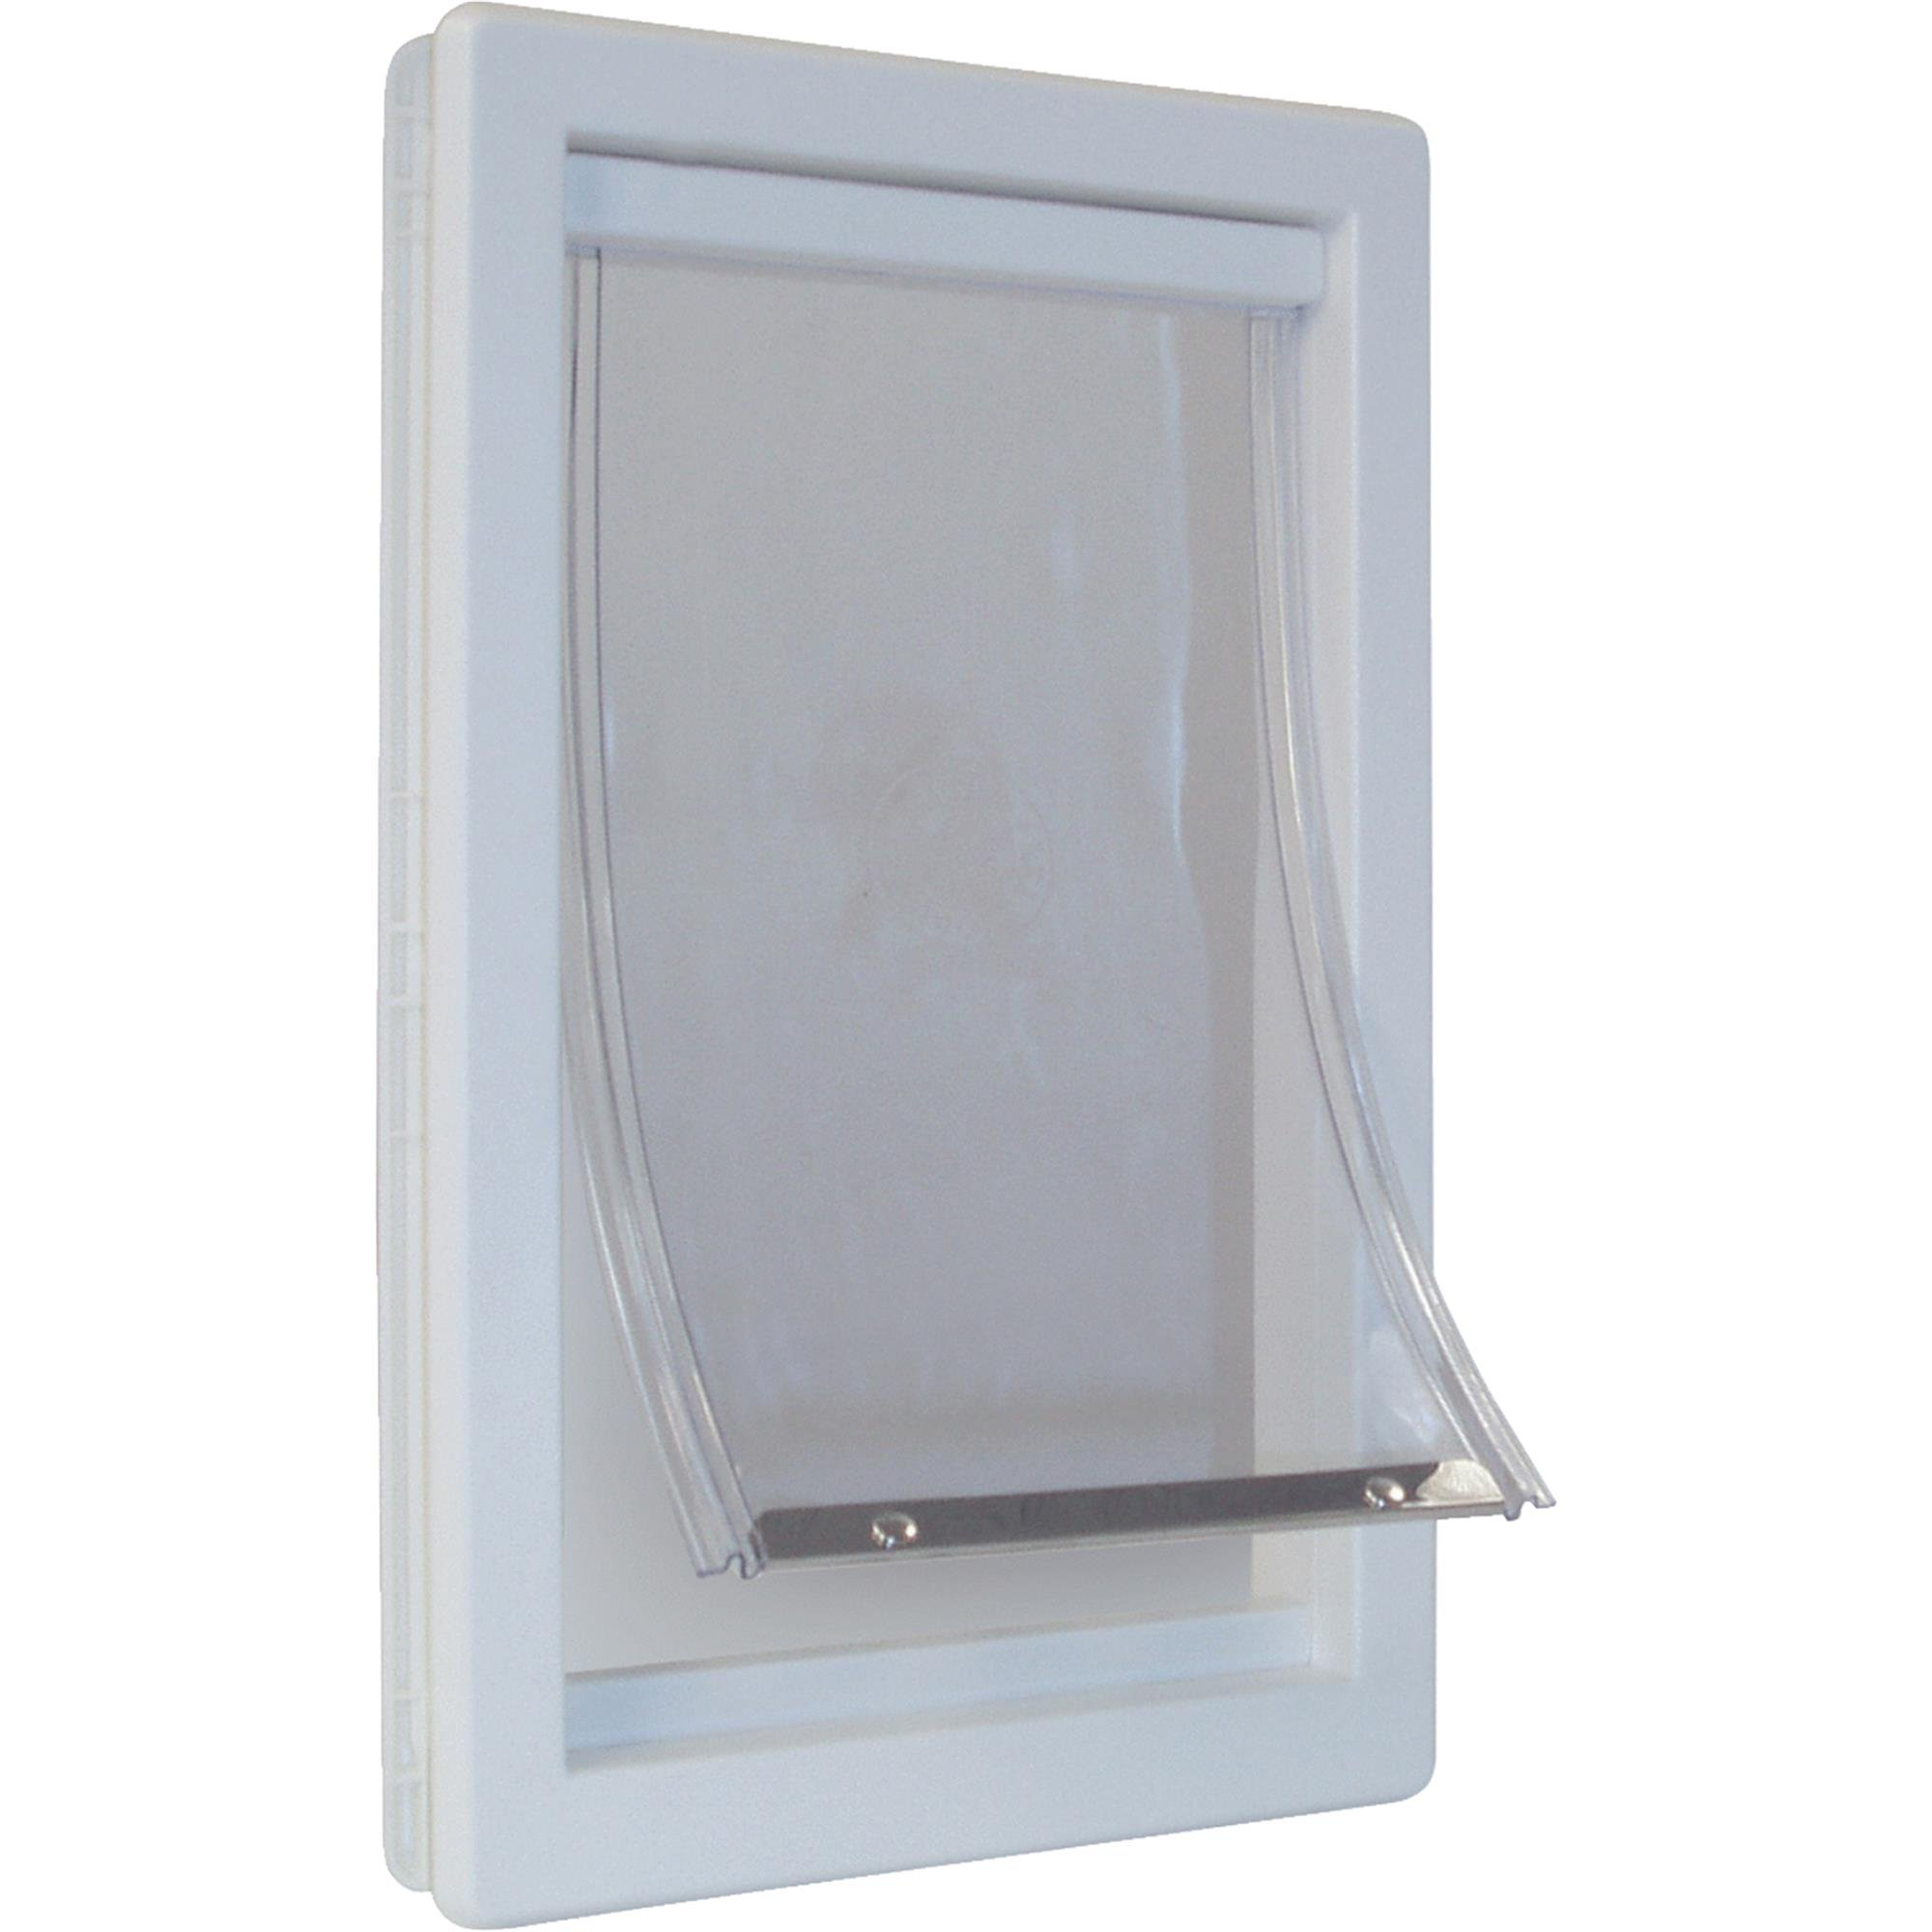 Ideal Thermoplastic Pet Door White, Extra Large for pet to 90 lbs.